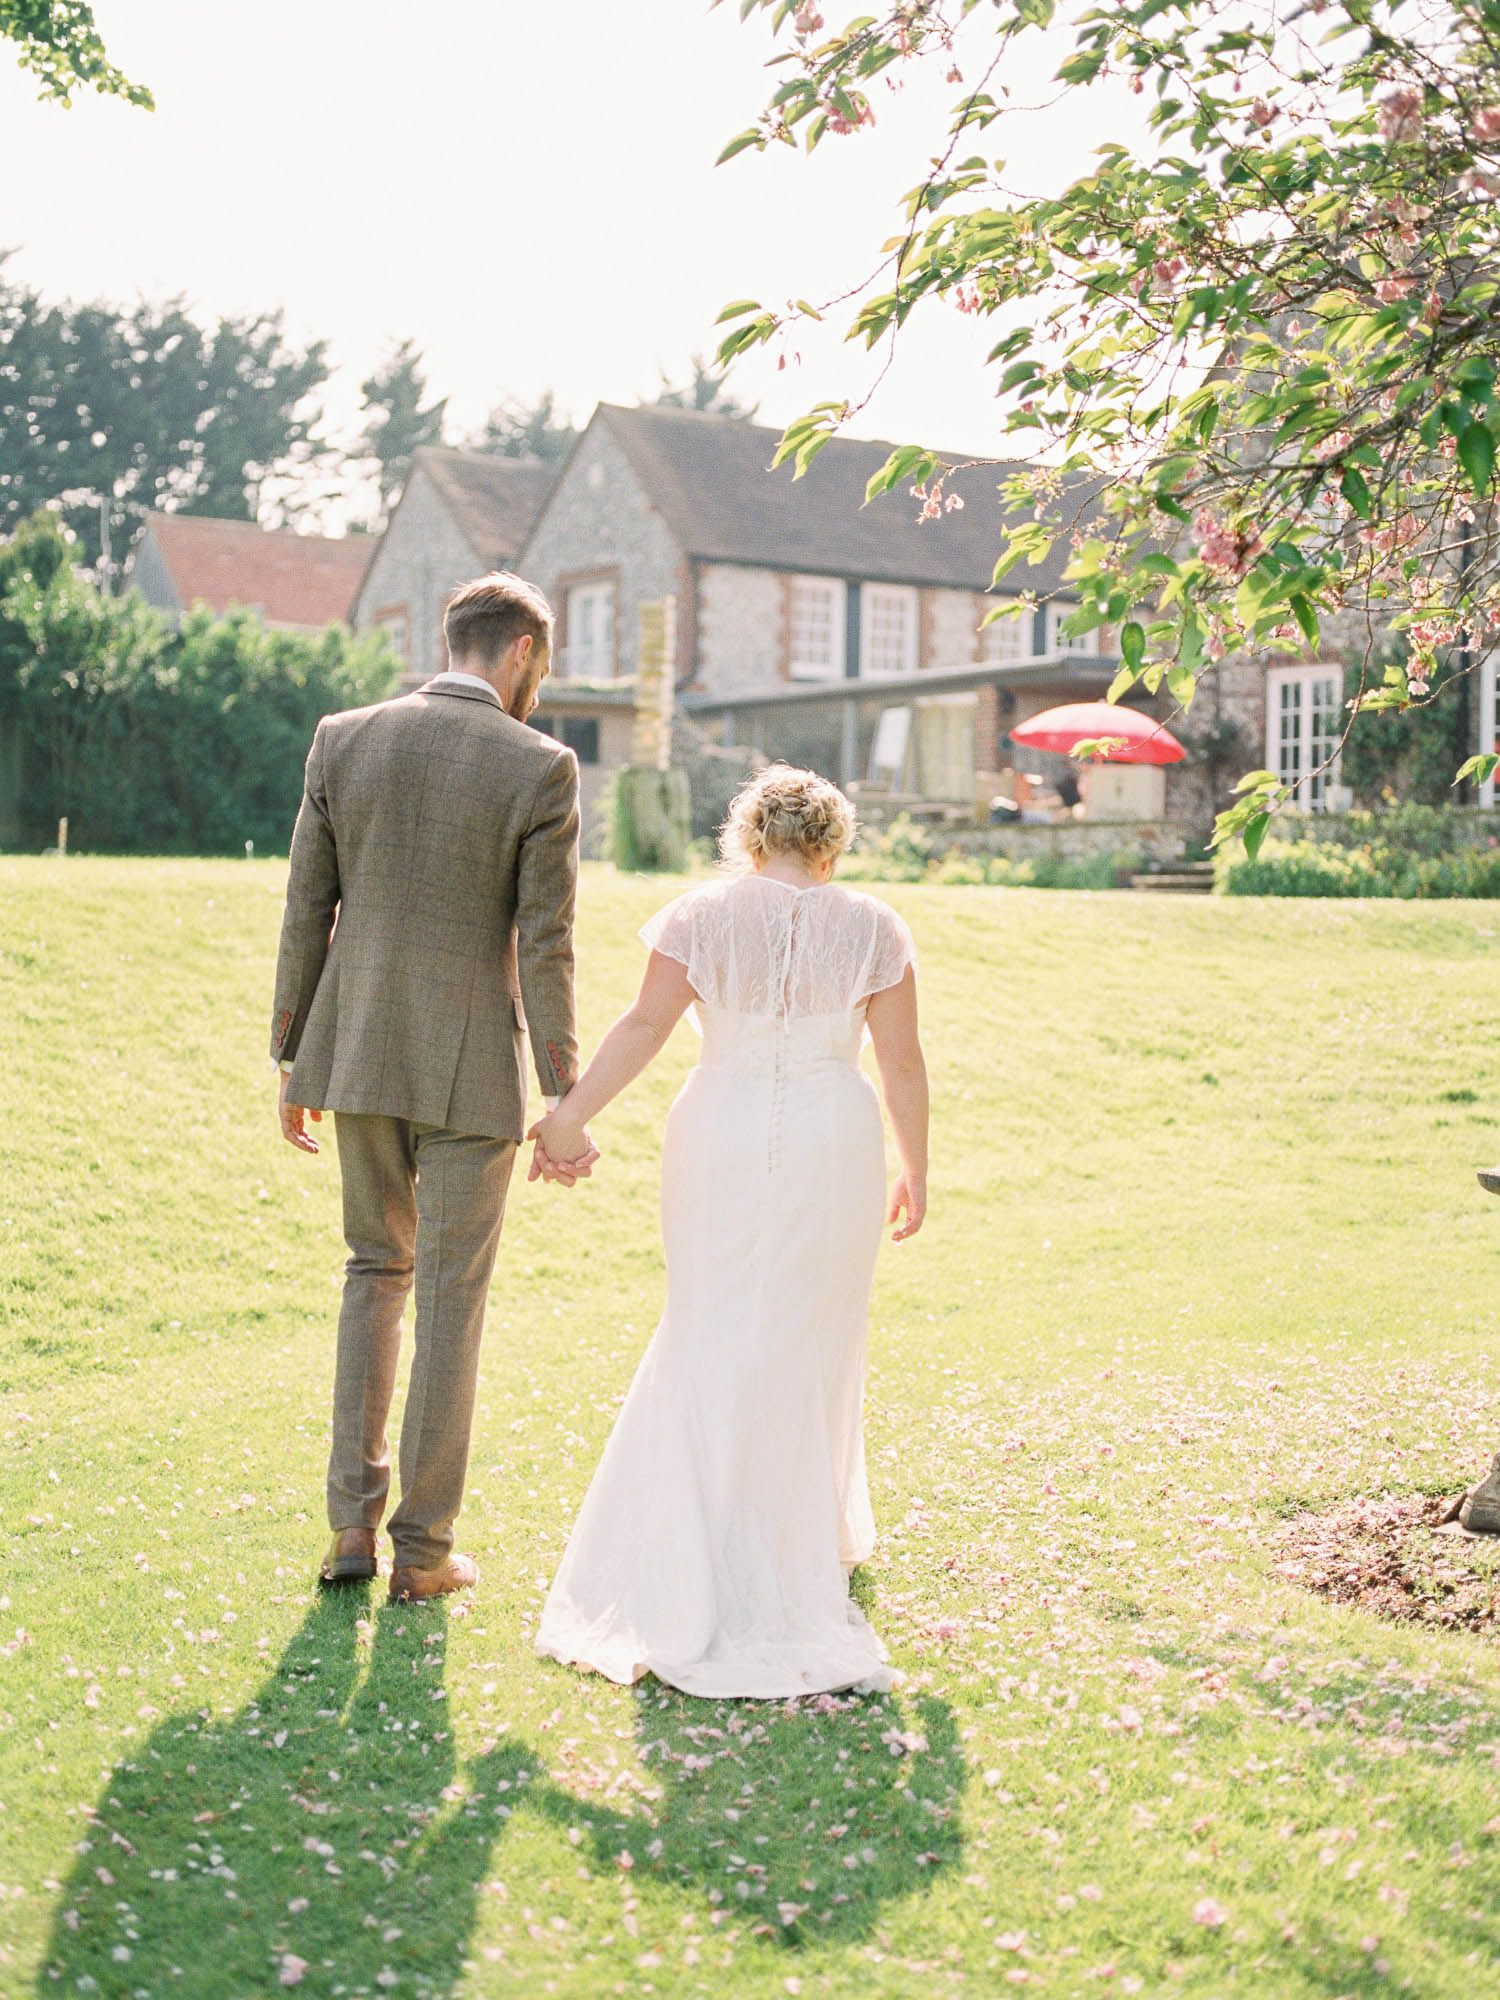 Amy O'Boyle Photography- Destination & UK Fine Art Film Wedding Photographer-55.jpg